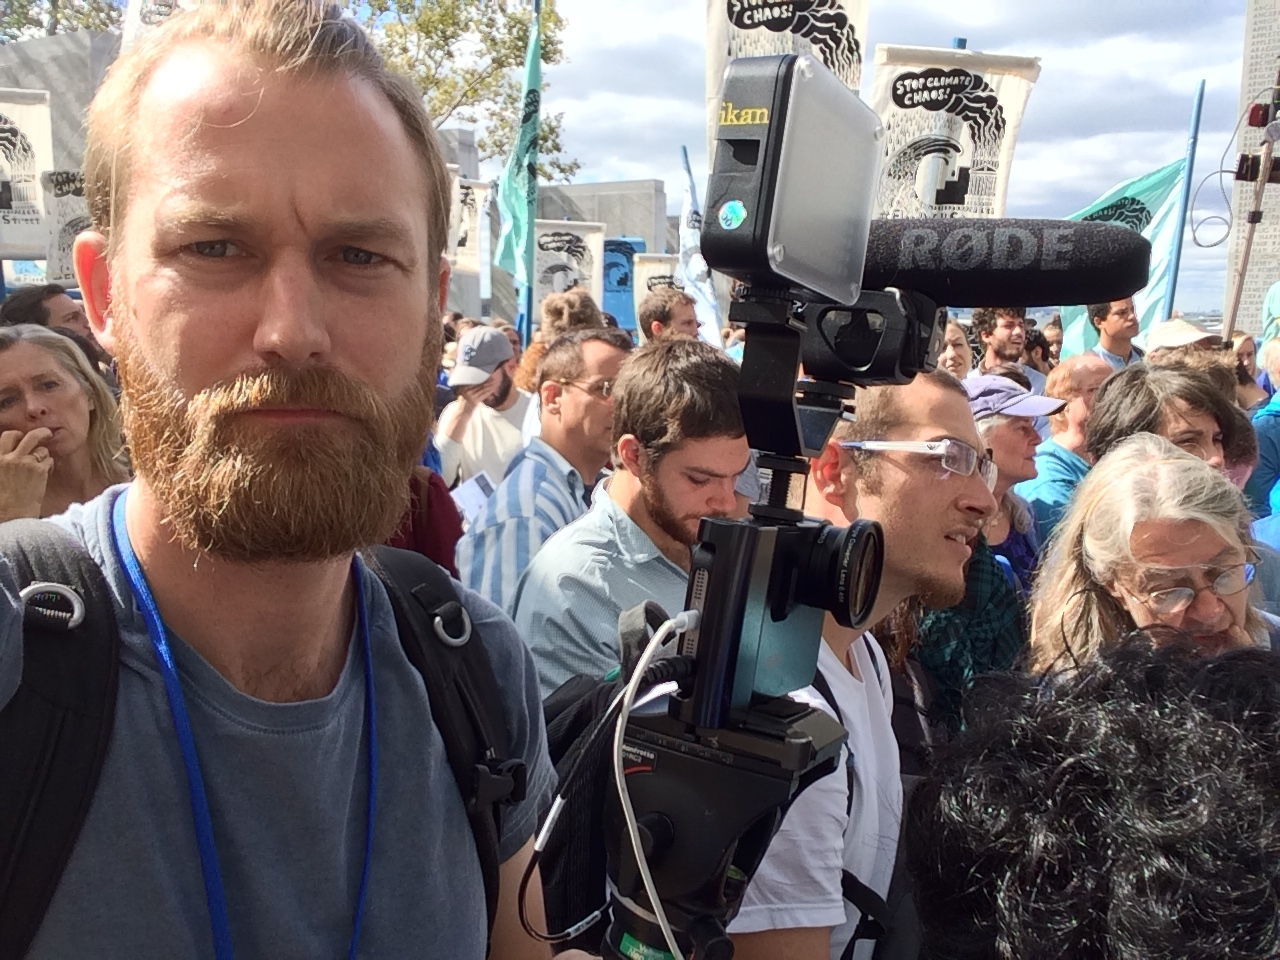 Mobile videojournalism: Japhet Weeks shoots NYC Climate march protests on iPhone for AJ+